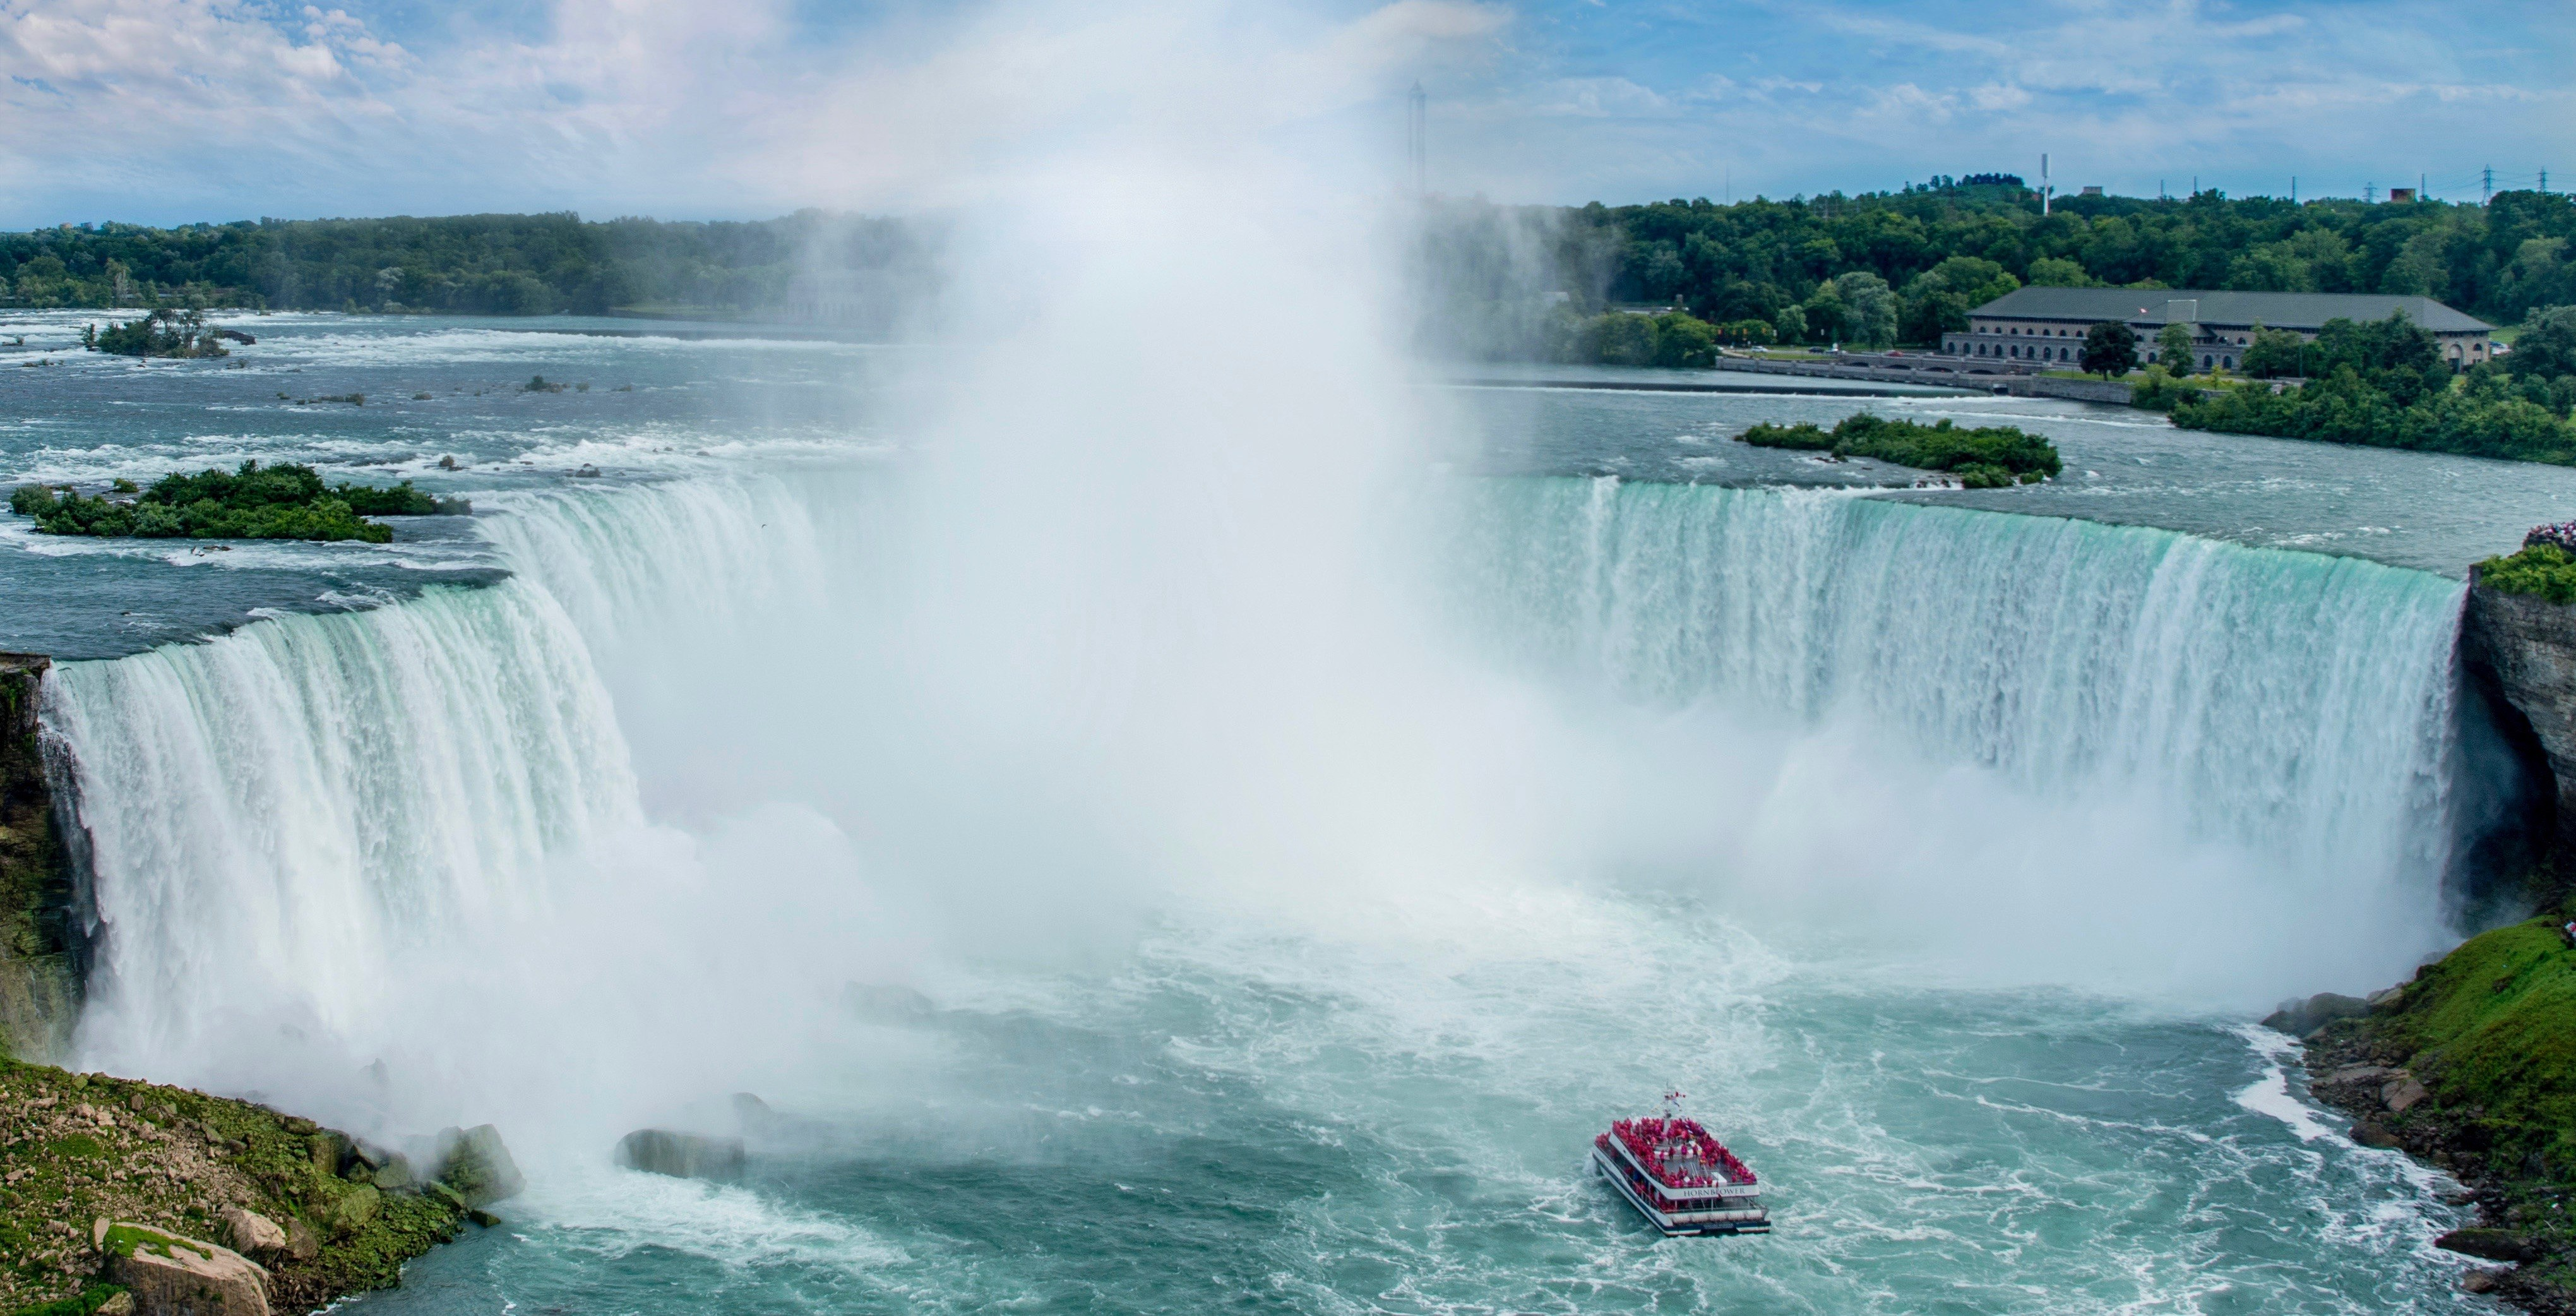 This Niagara Falls day trip was named one of the best in the world